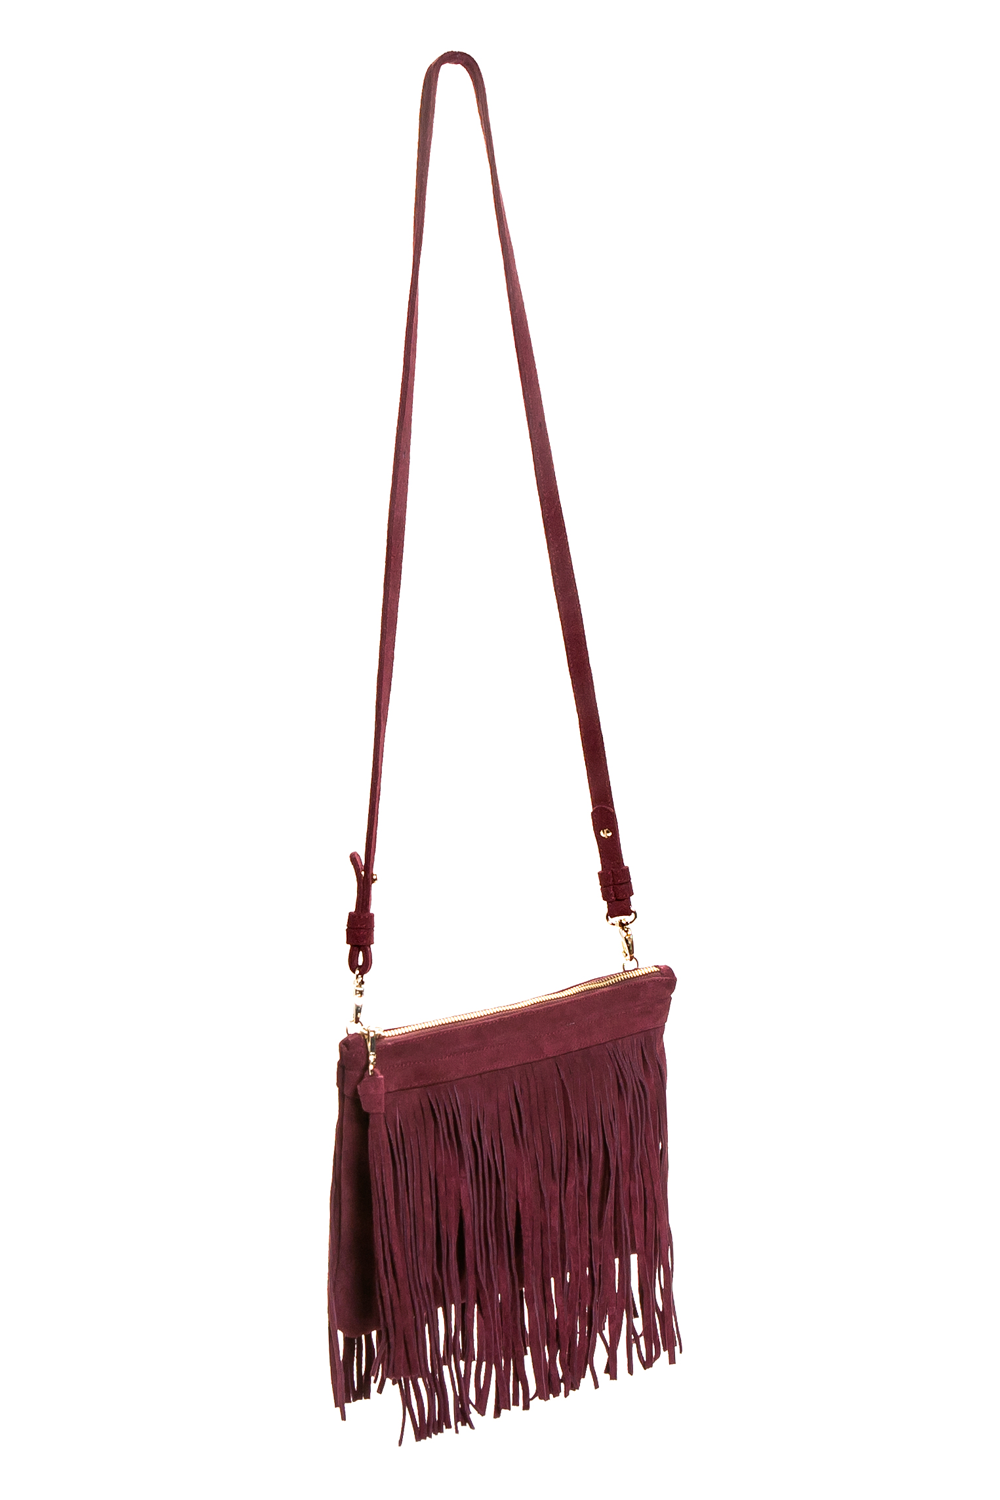 Mel Boteri | 'Mini Taylea' Burgundy Suede Fringed Bag | Side View